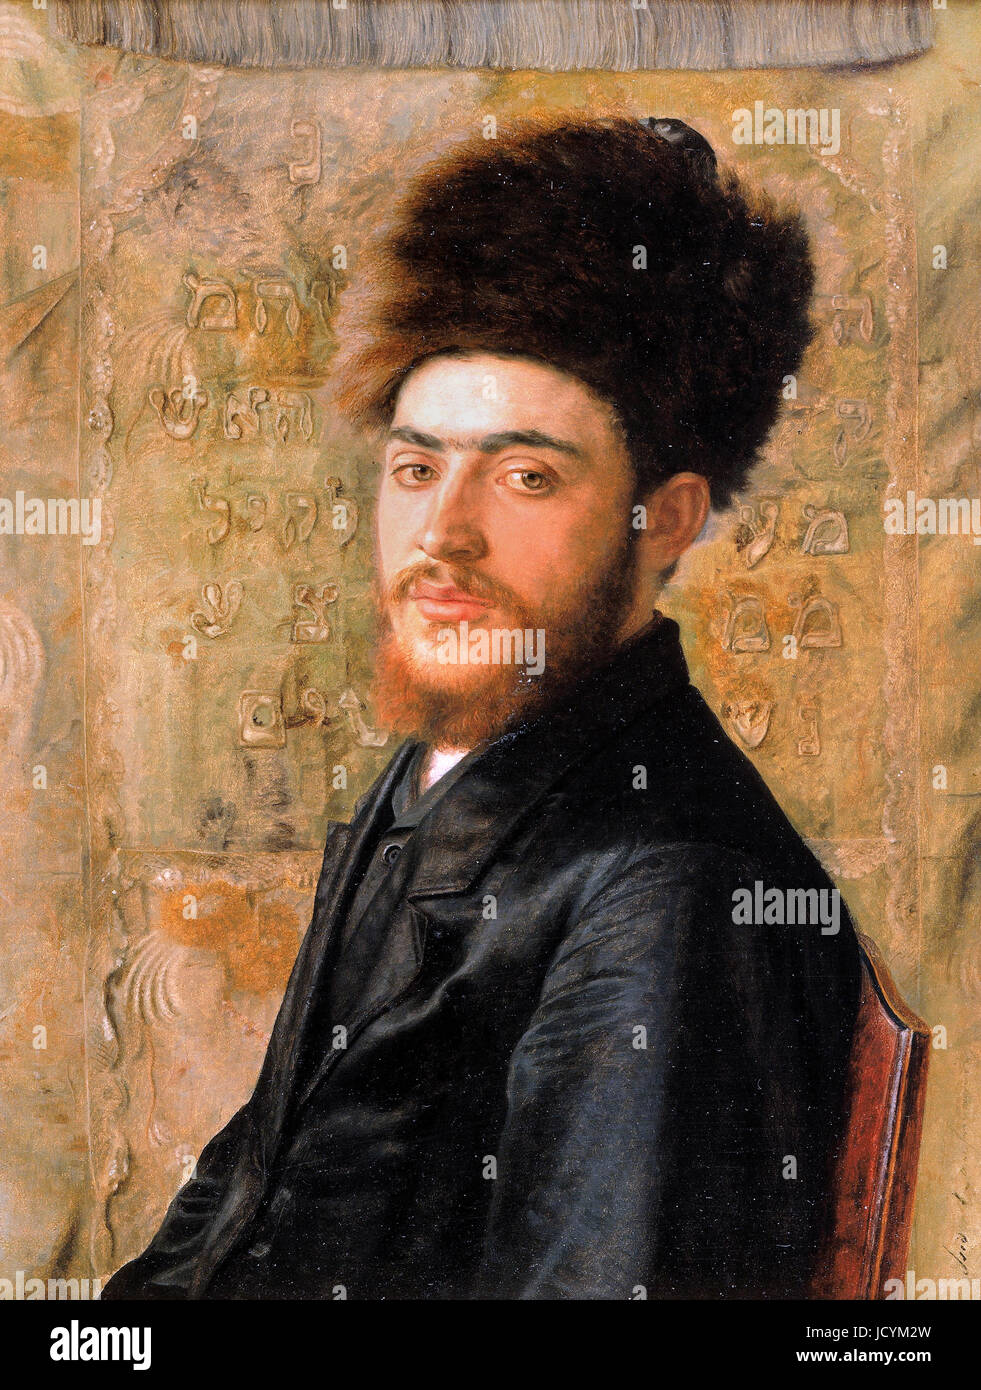 Isidor Kaufmann, Man With Fur Hat. Circa 1910. Oil on panel. The Jewish Museum, New York City, USA. - Stock Image